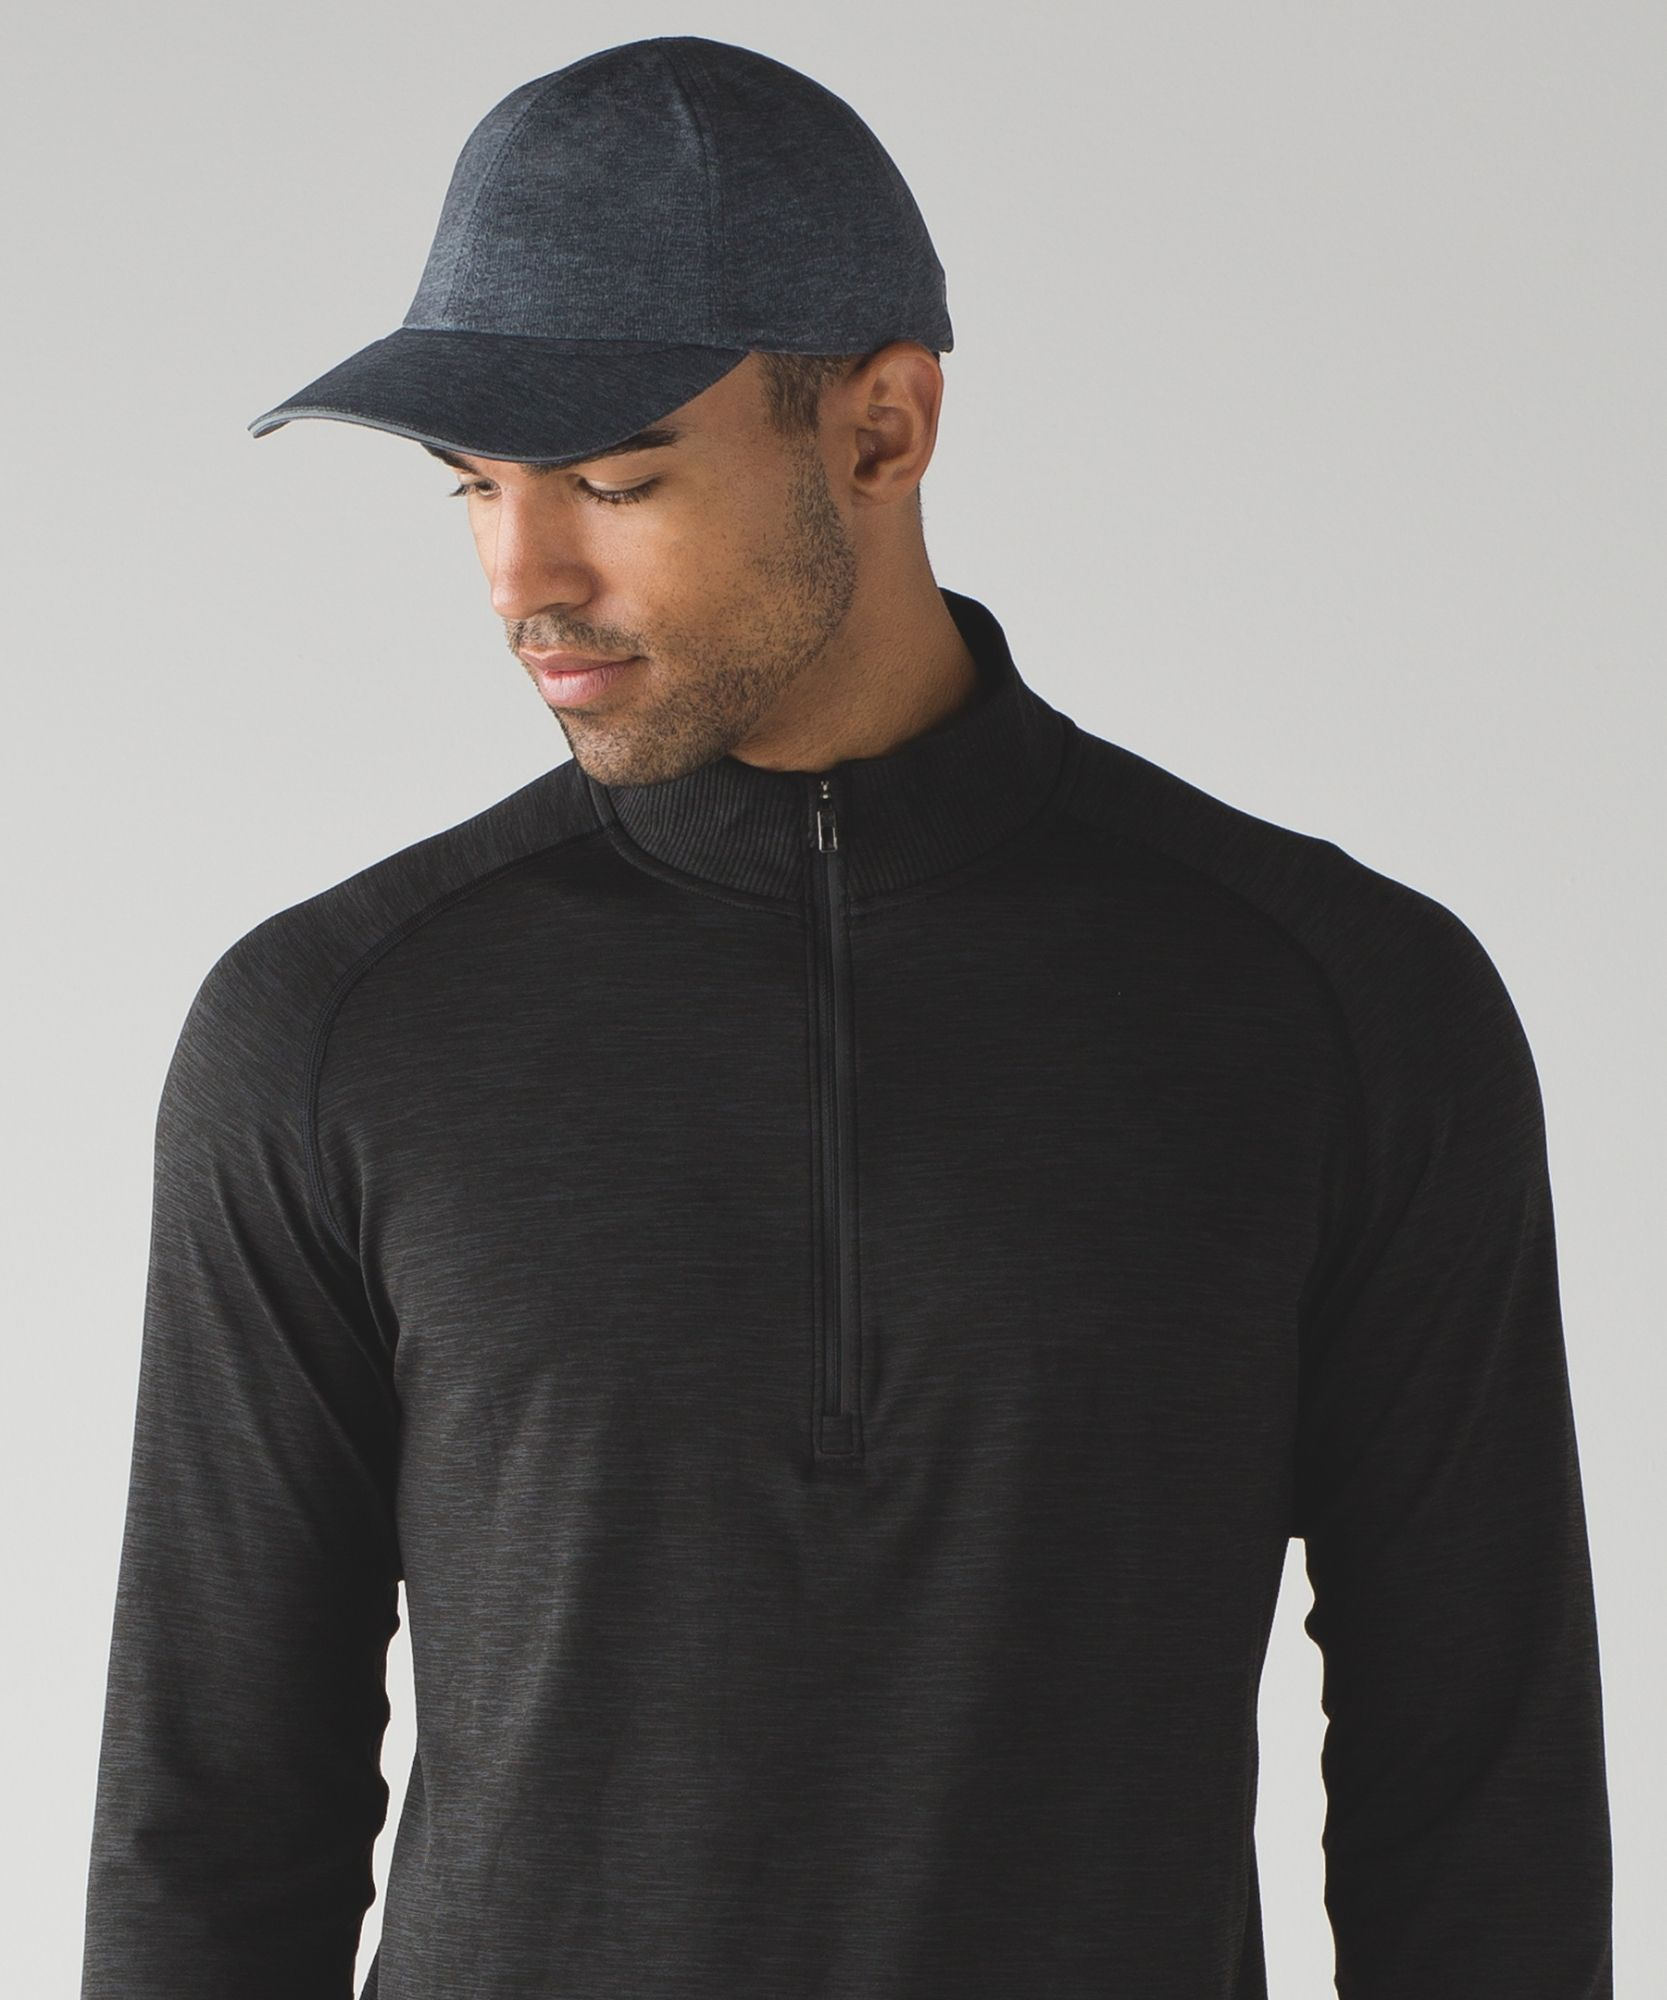 Men's Running Hat - Lightspeed Run Hat - lululemon